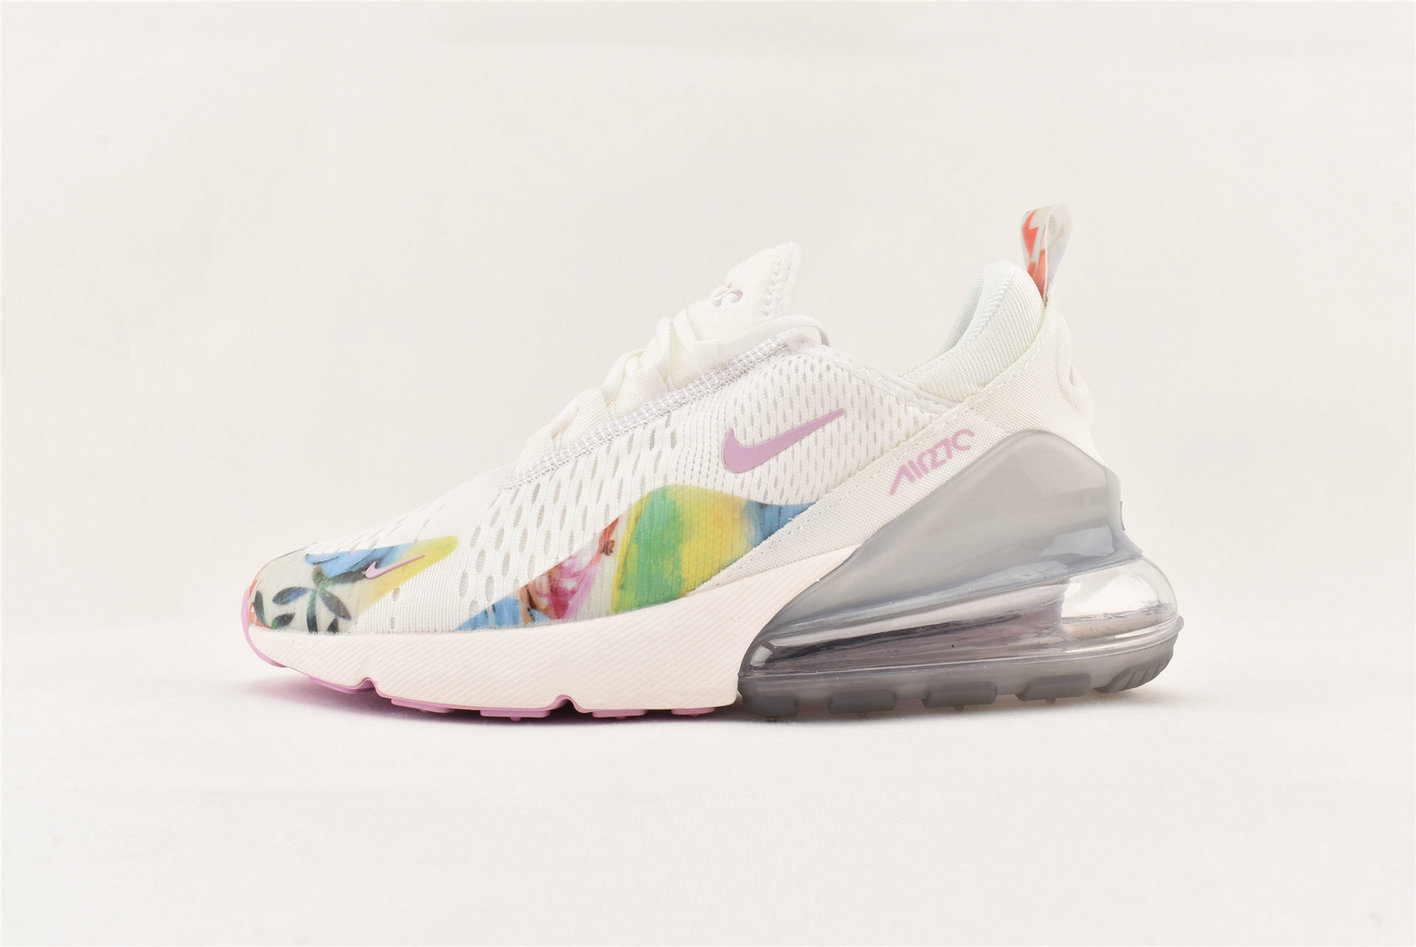 detailed look 122a6 1309b Nike Air Max 270 Womens, Nike Air Max 270 - Wholesale Cheap ...